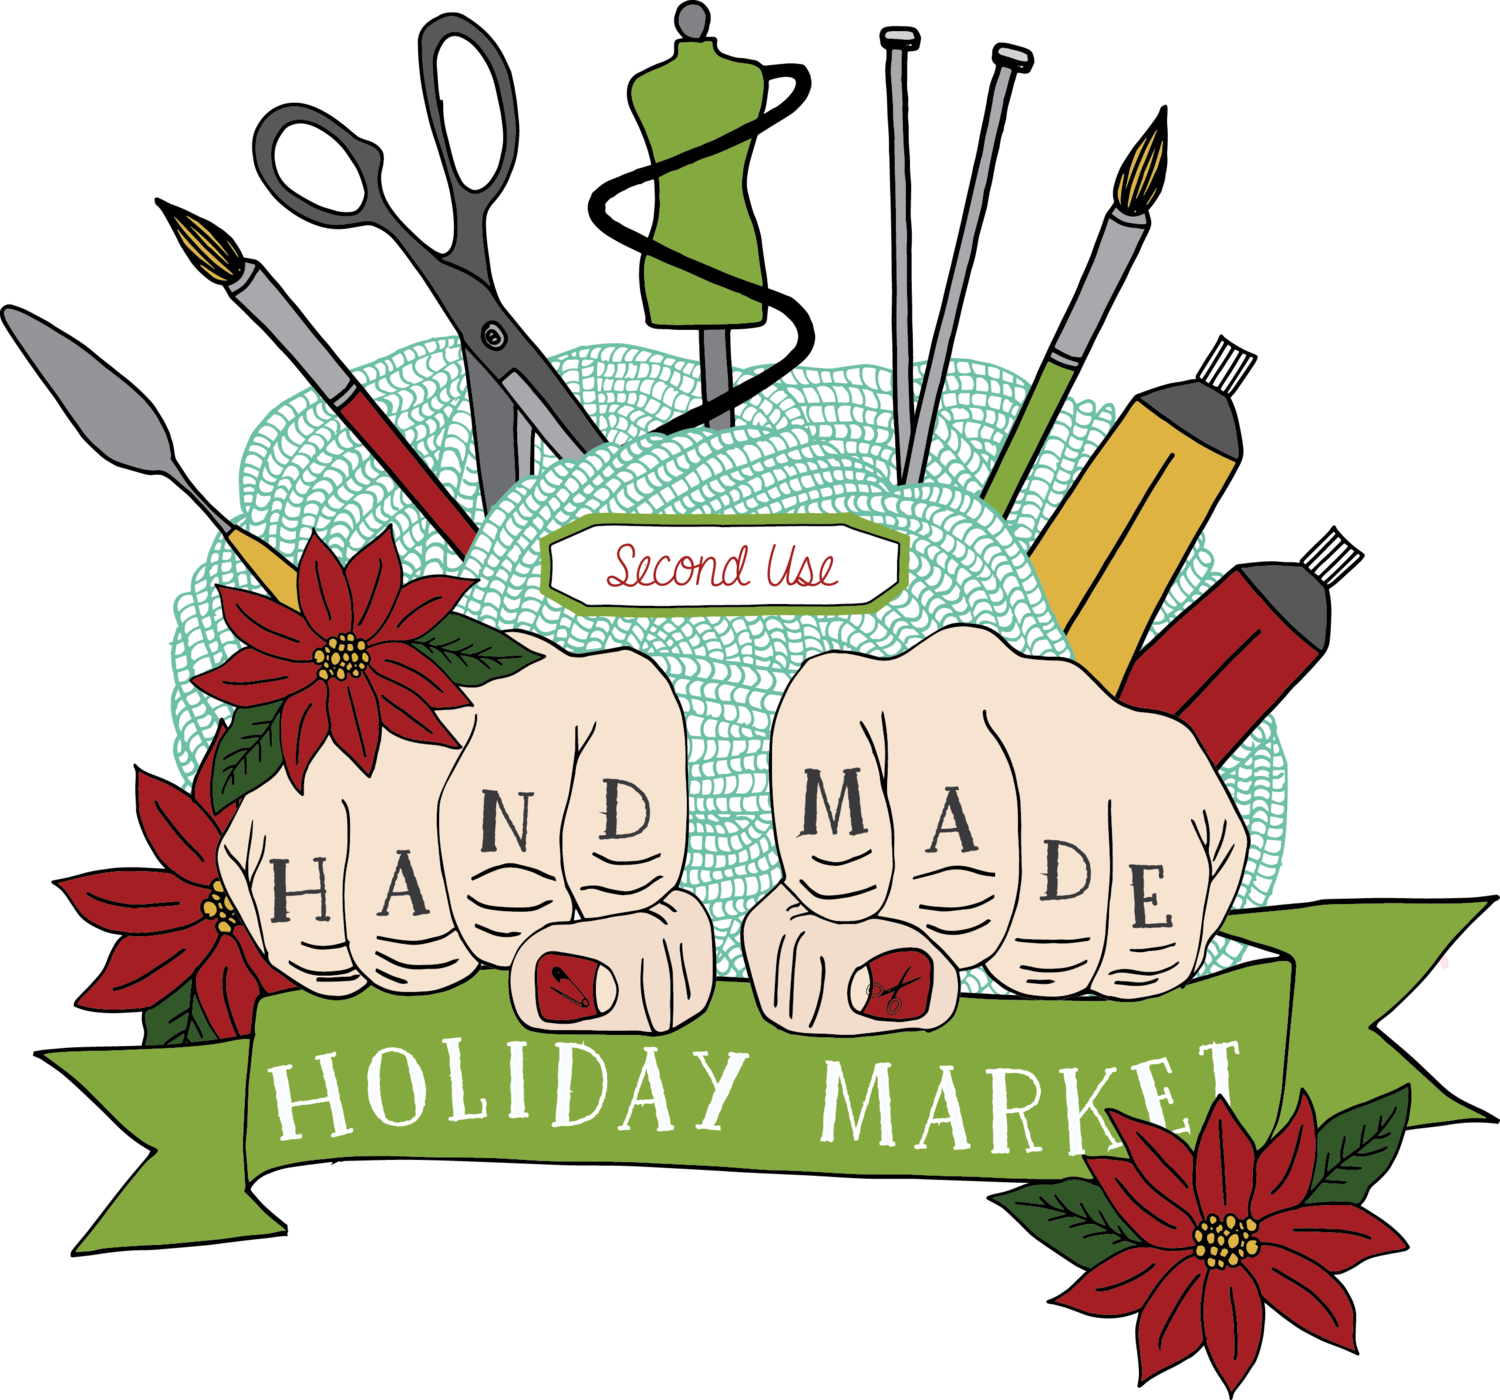 Second Use Handmade Holiday Market